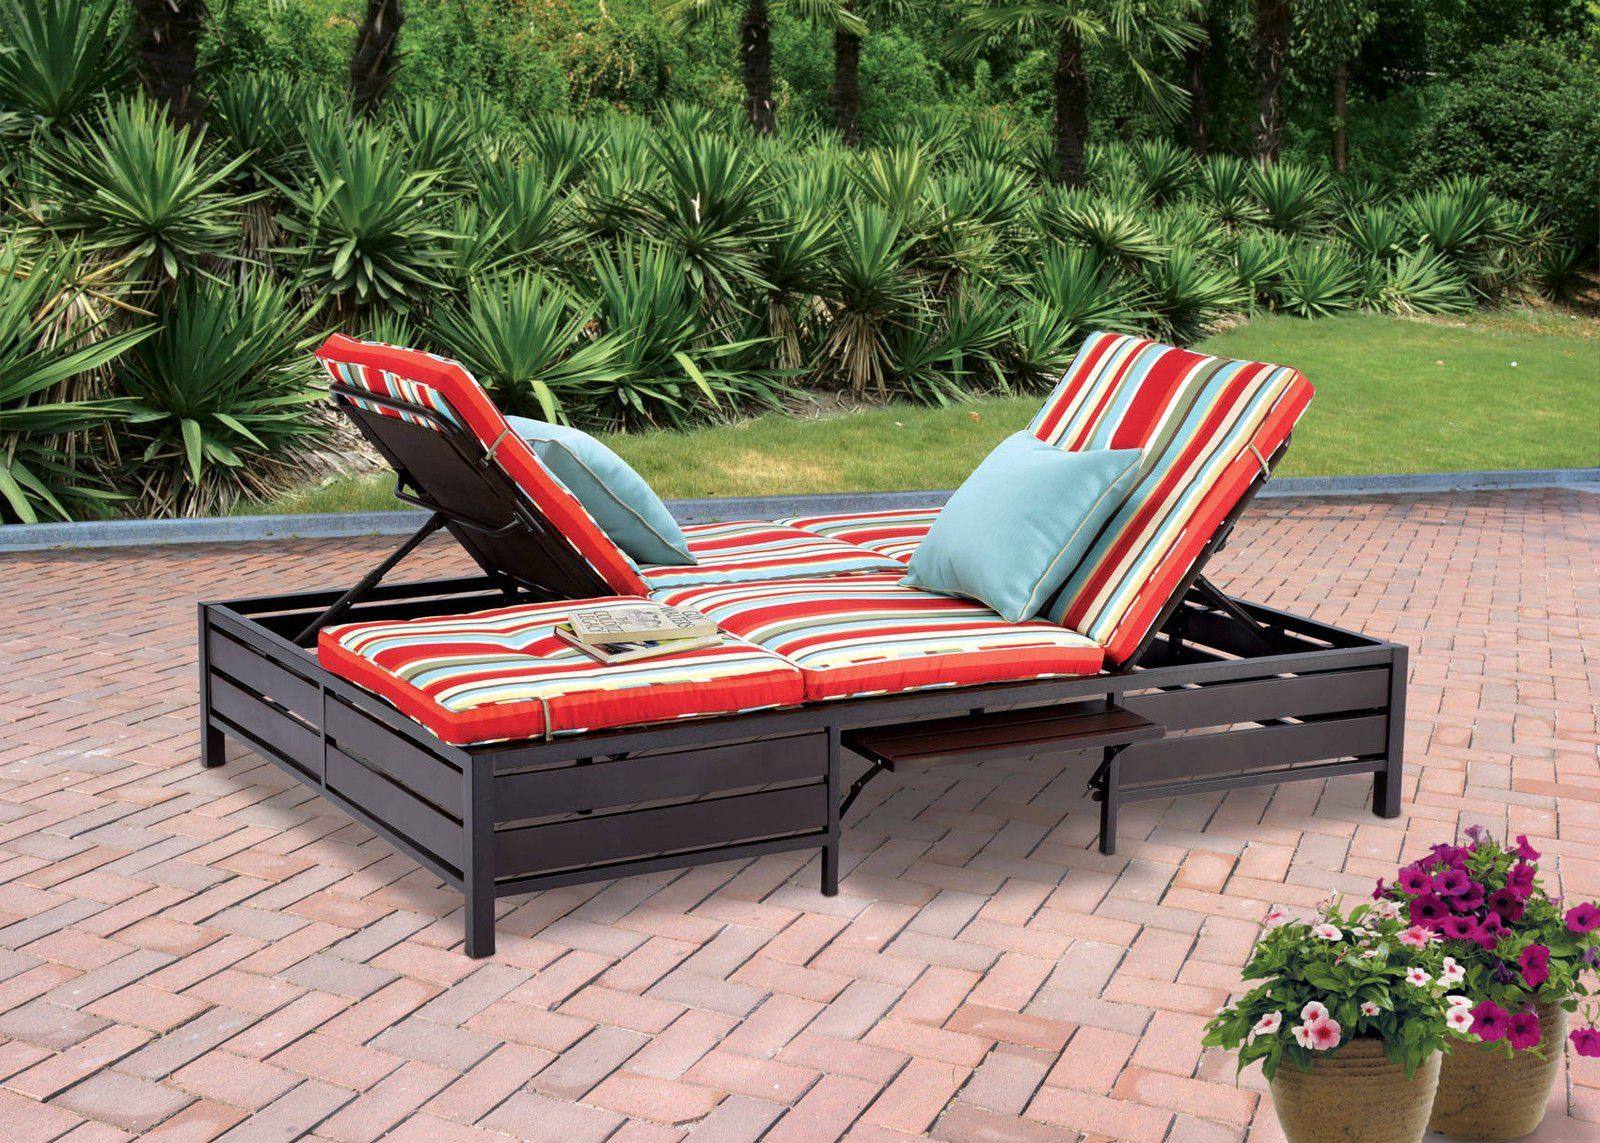 Great Double Chaise Lounger   This Red Stripe Outdoor Chaise Lounge Is  Comfortable Sun Patio Furniture Guaranteed